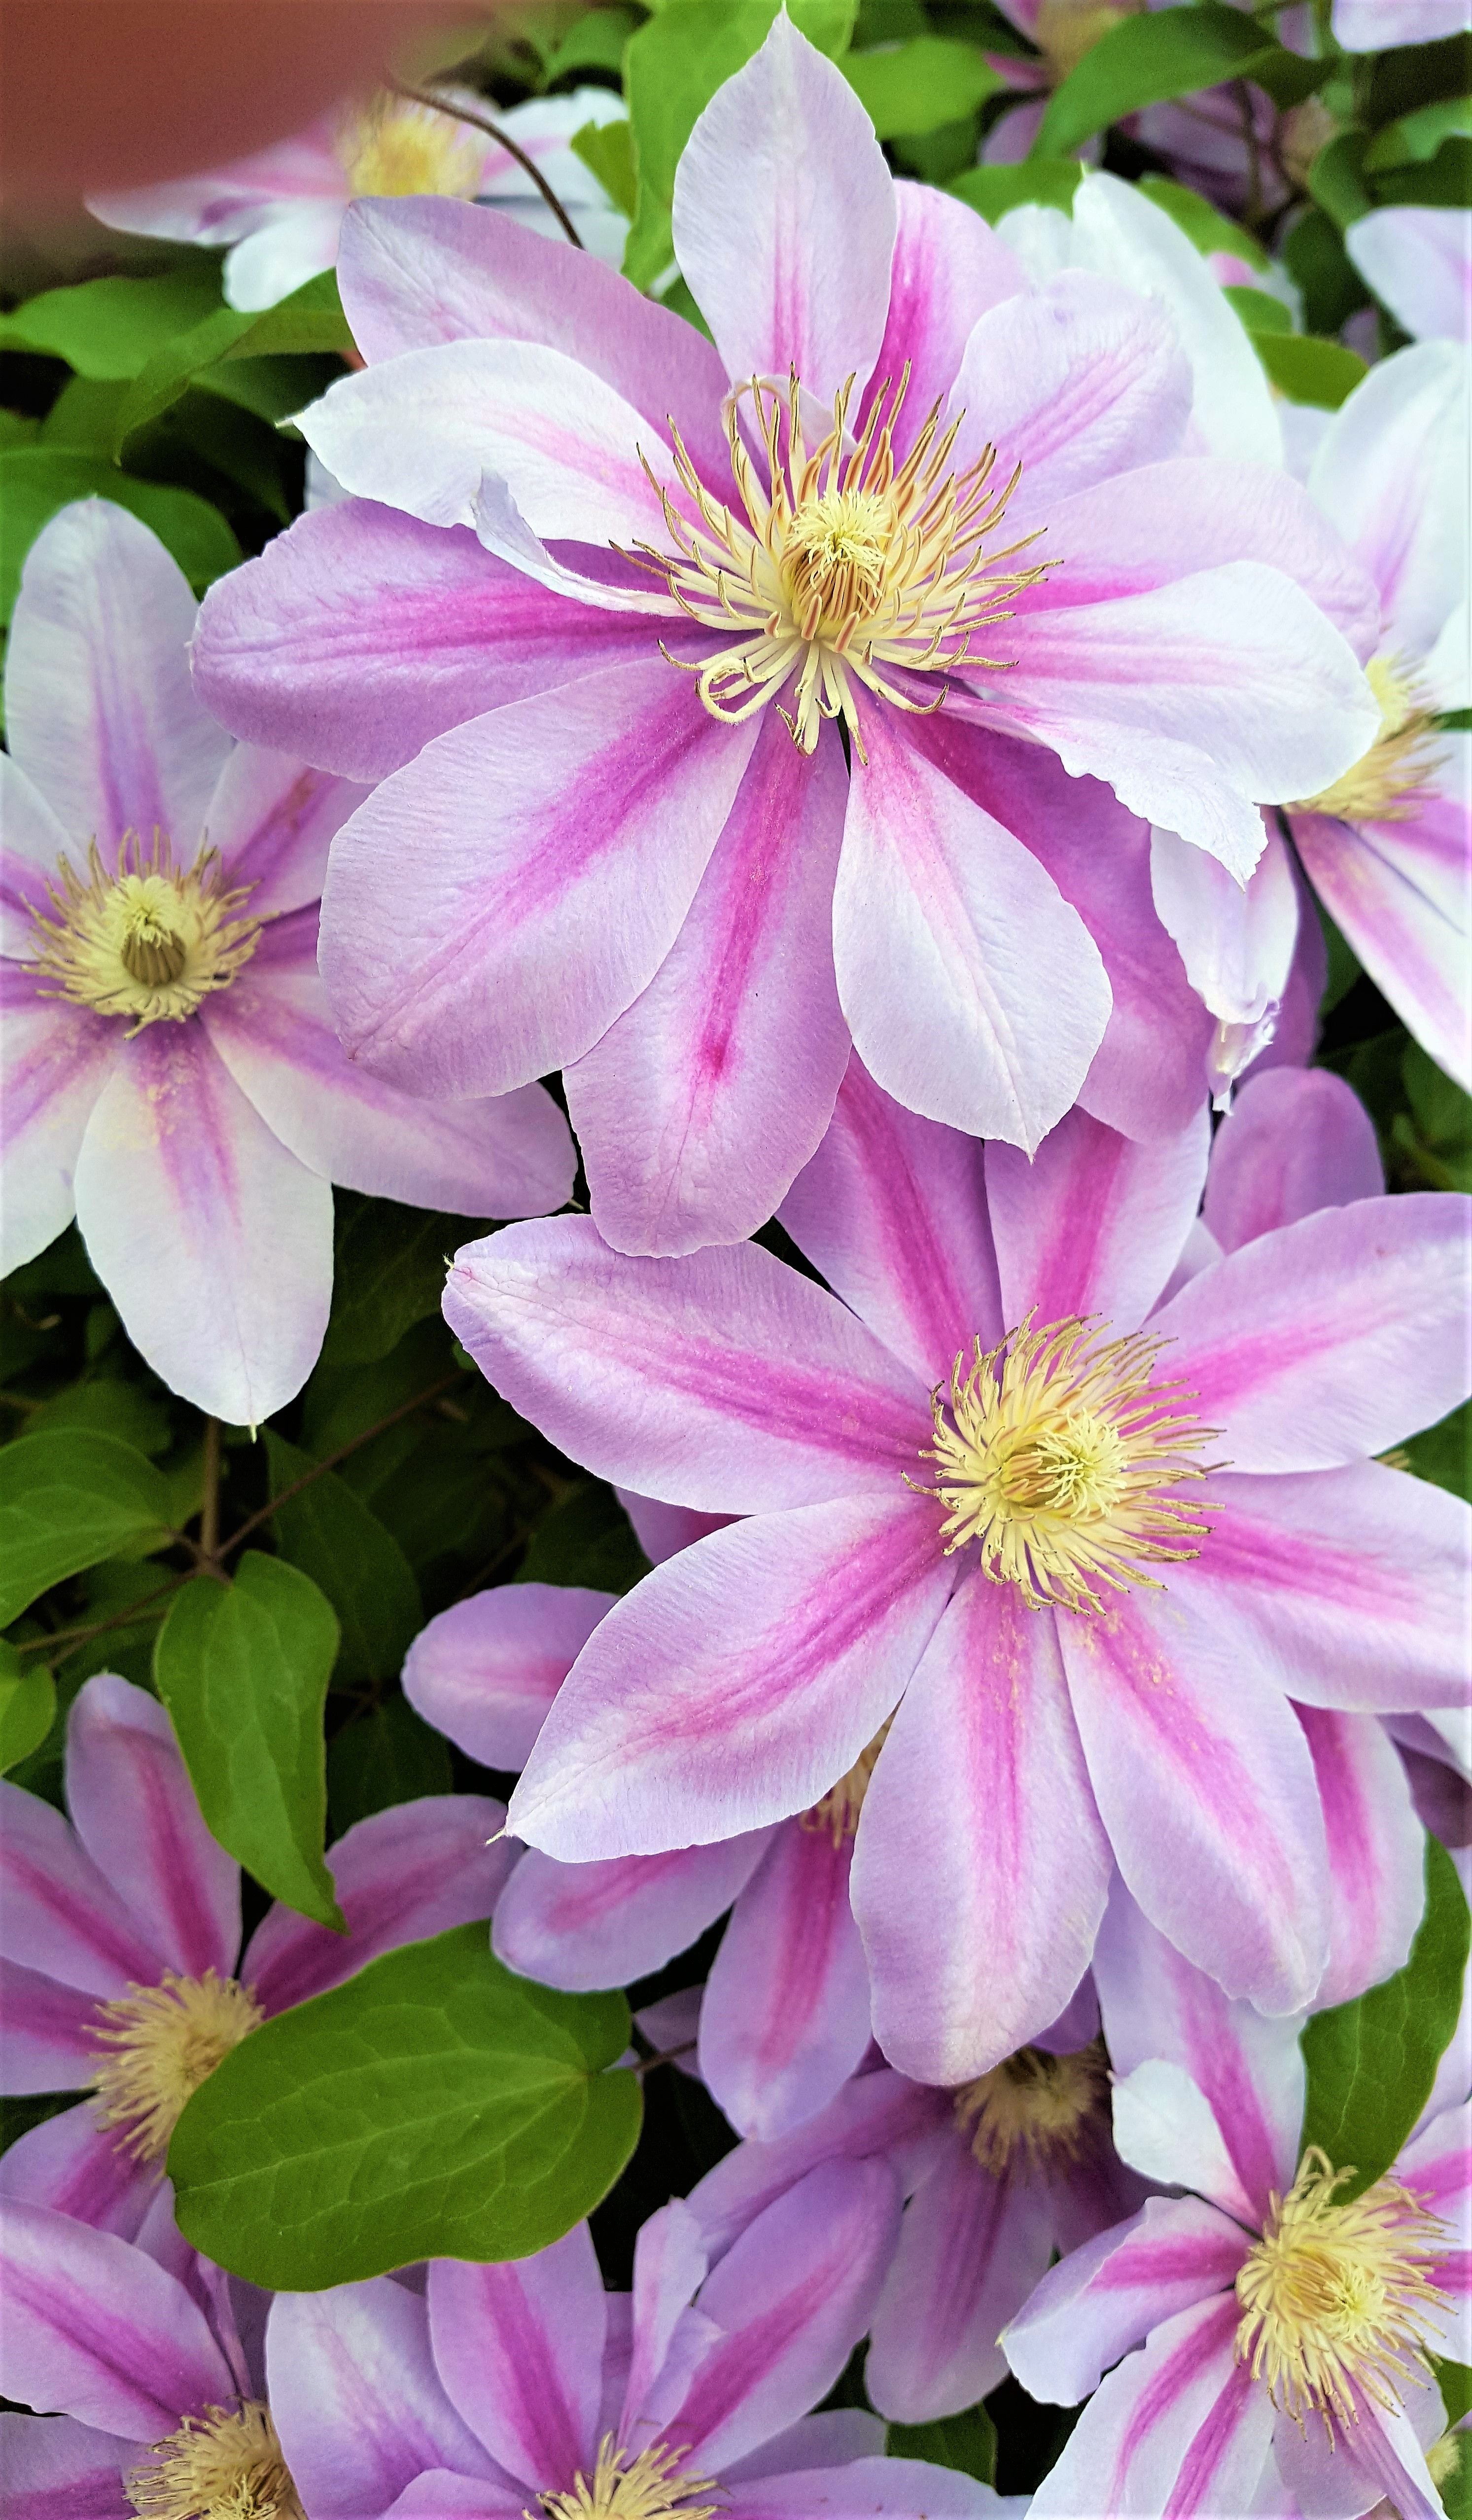 Climbing Flowering Vine Clematis With Lavender Blooms Flowers